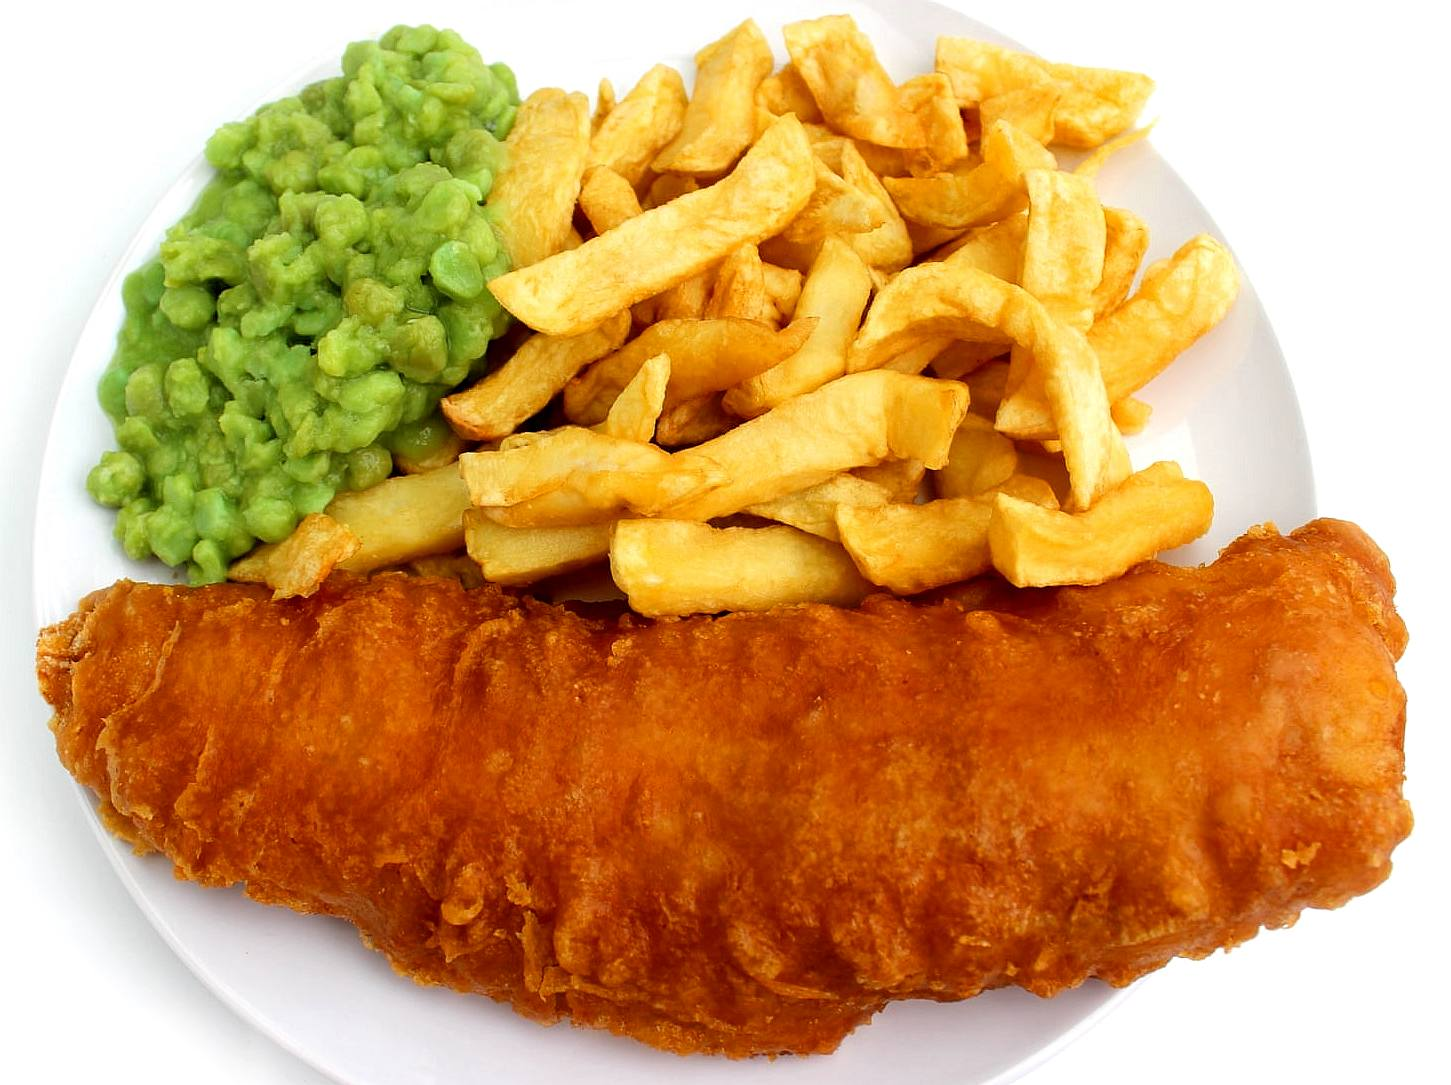 Cod and chips with plastic microfibers please